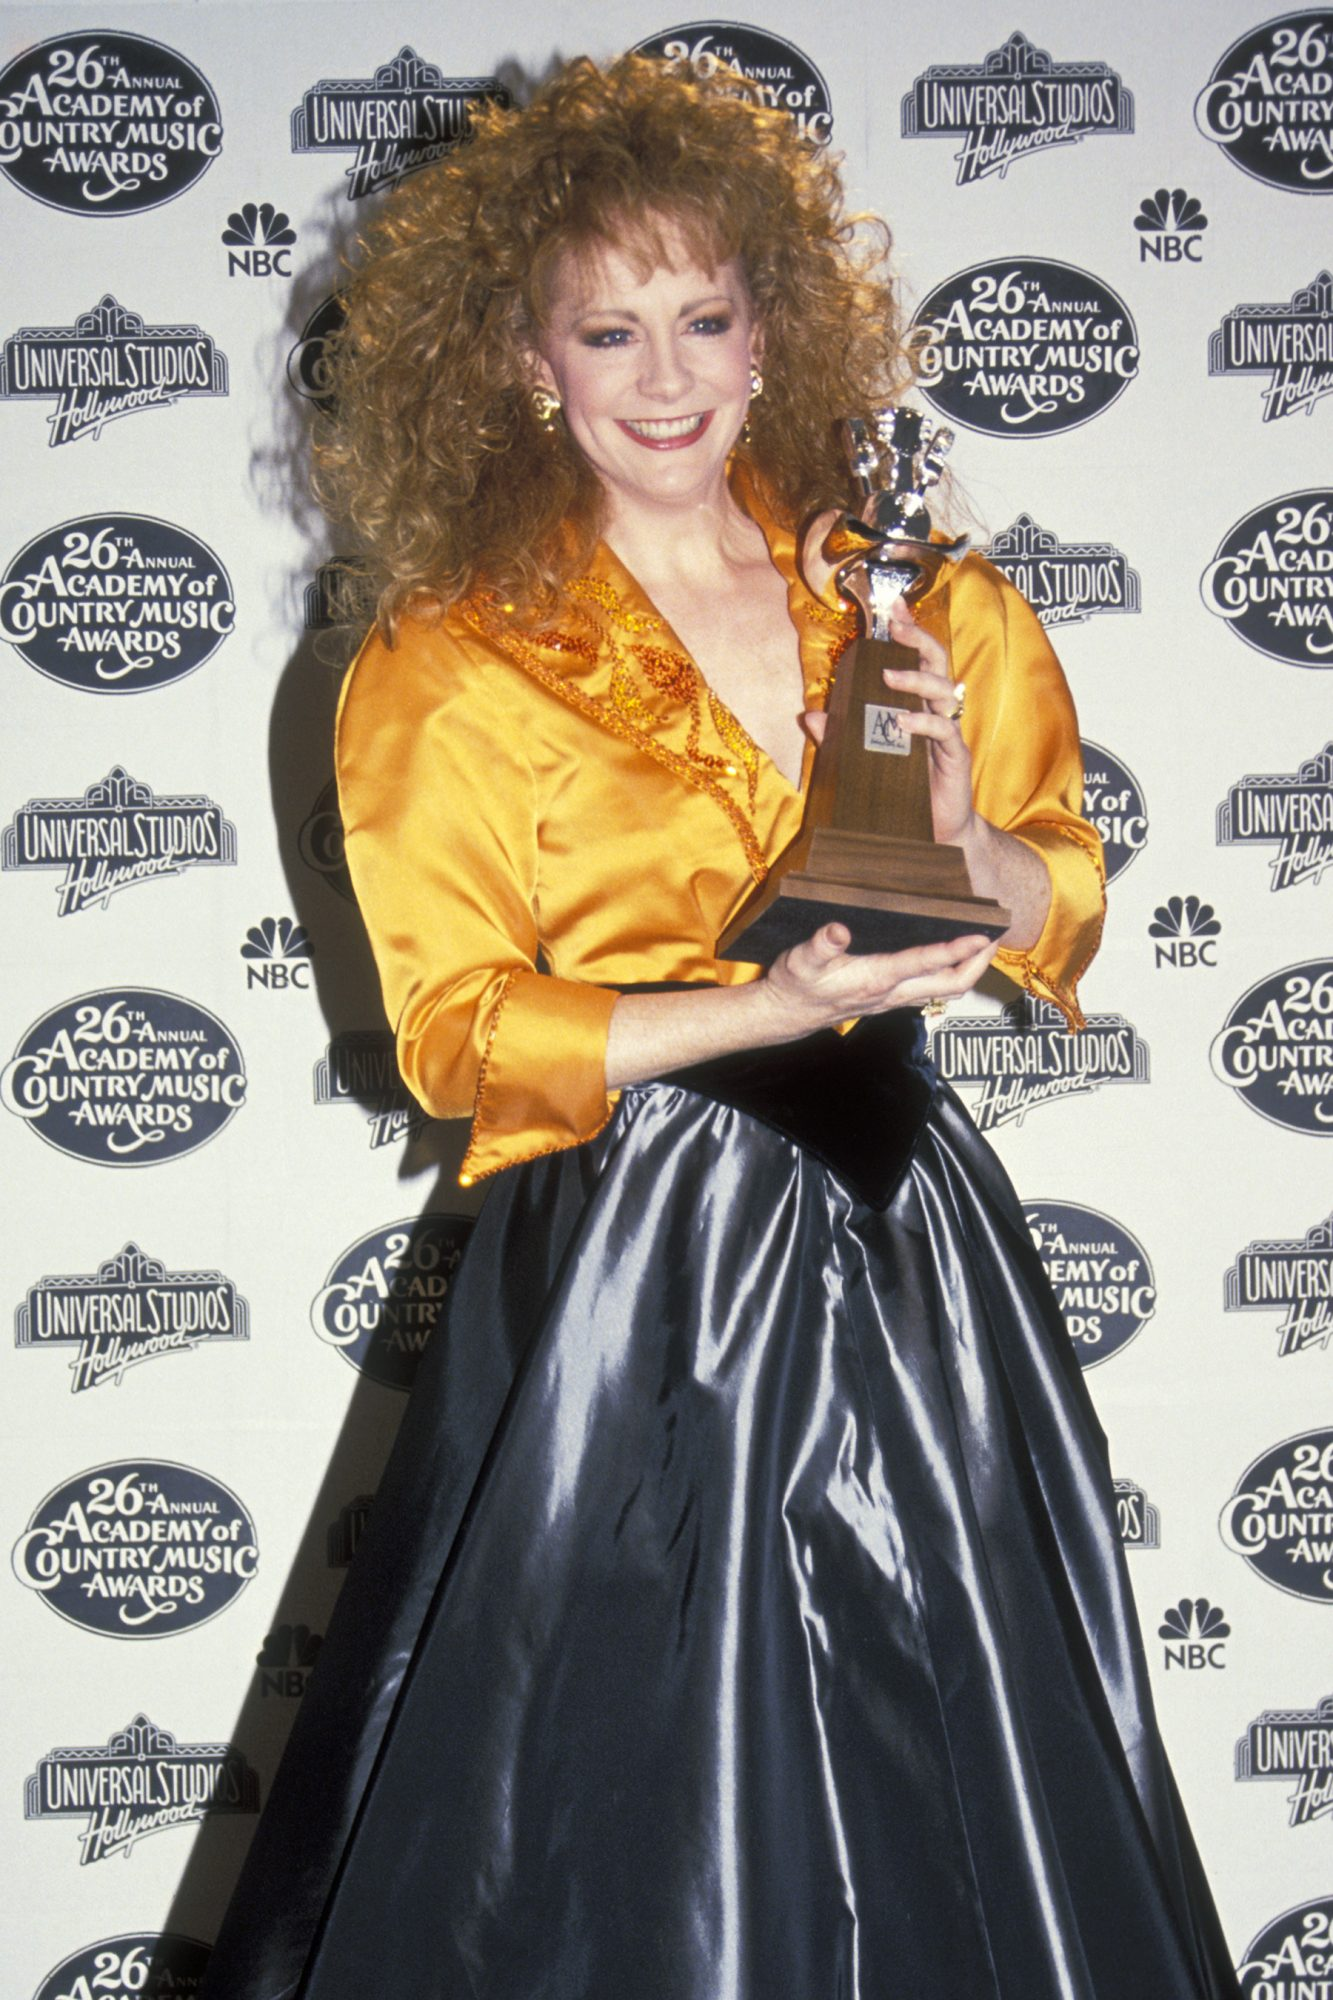 26th Annual Academy of Country Music Awards